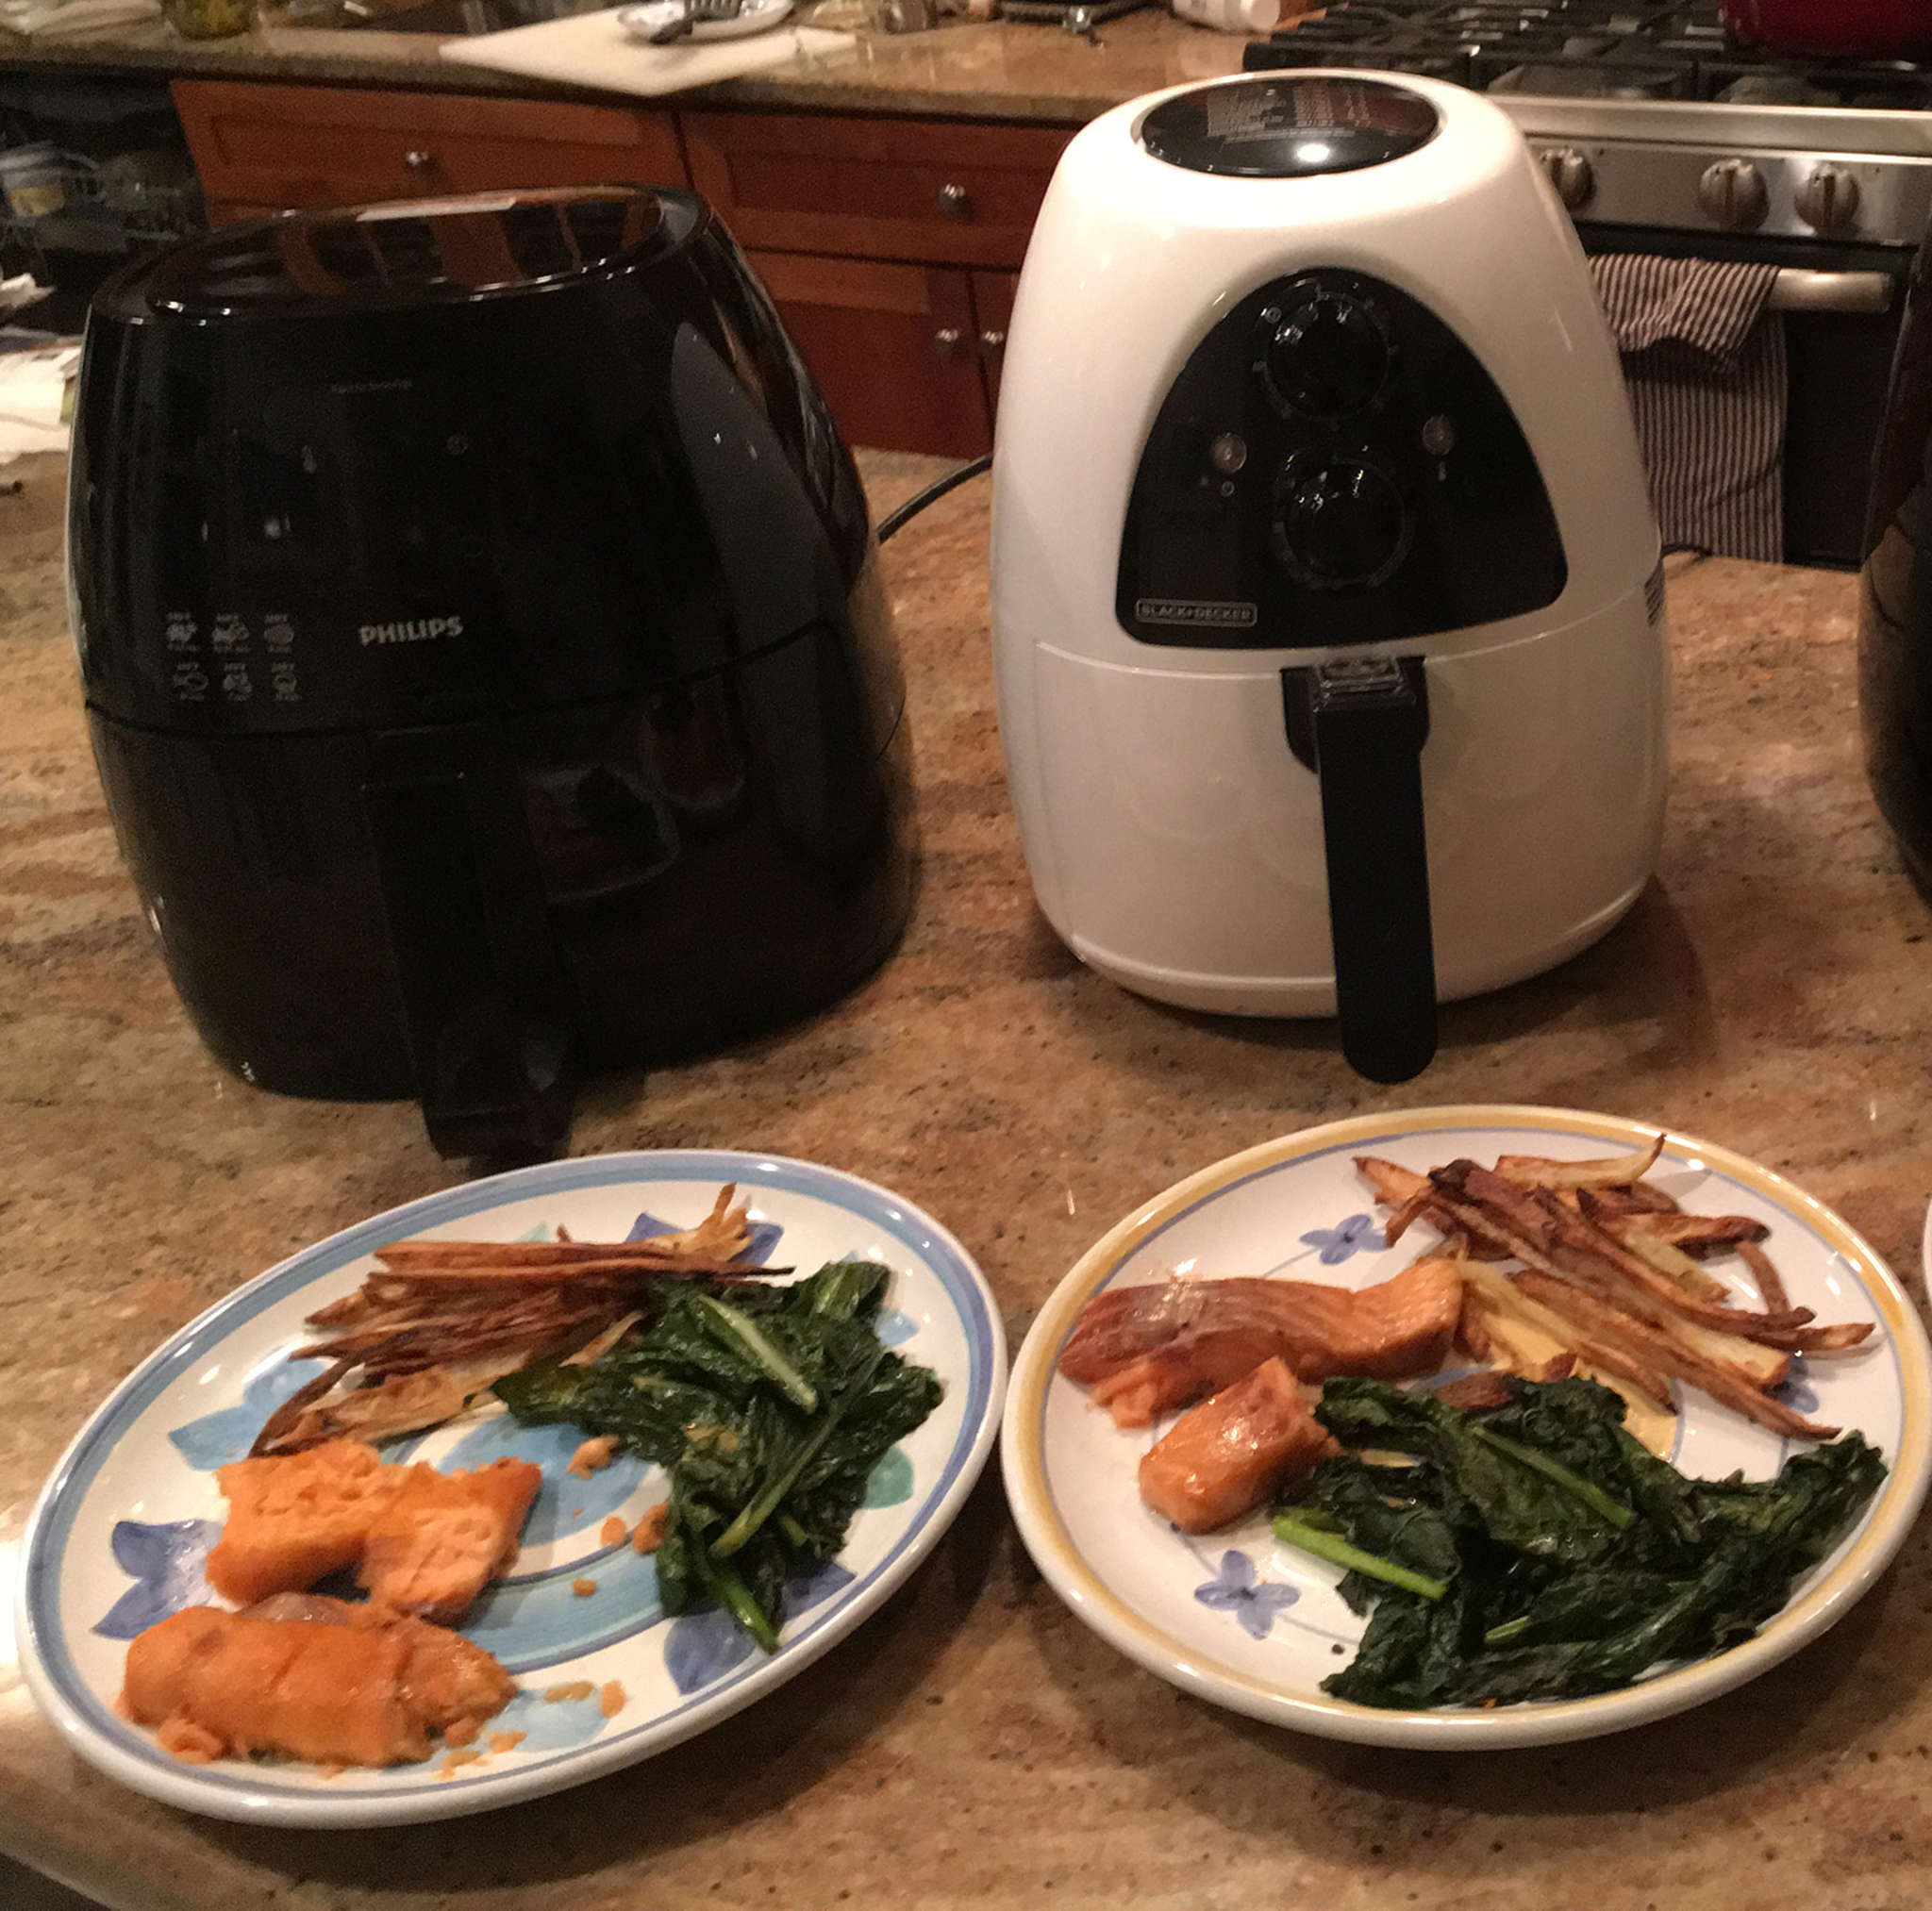 Air Fryers like the Philips Avance (left) and the Black and Decker Purifry both circulate hot air to fully fry food, though in larger portions in the Philips.